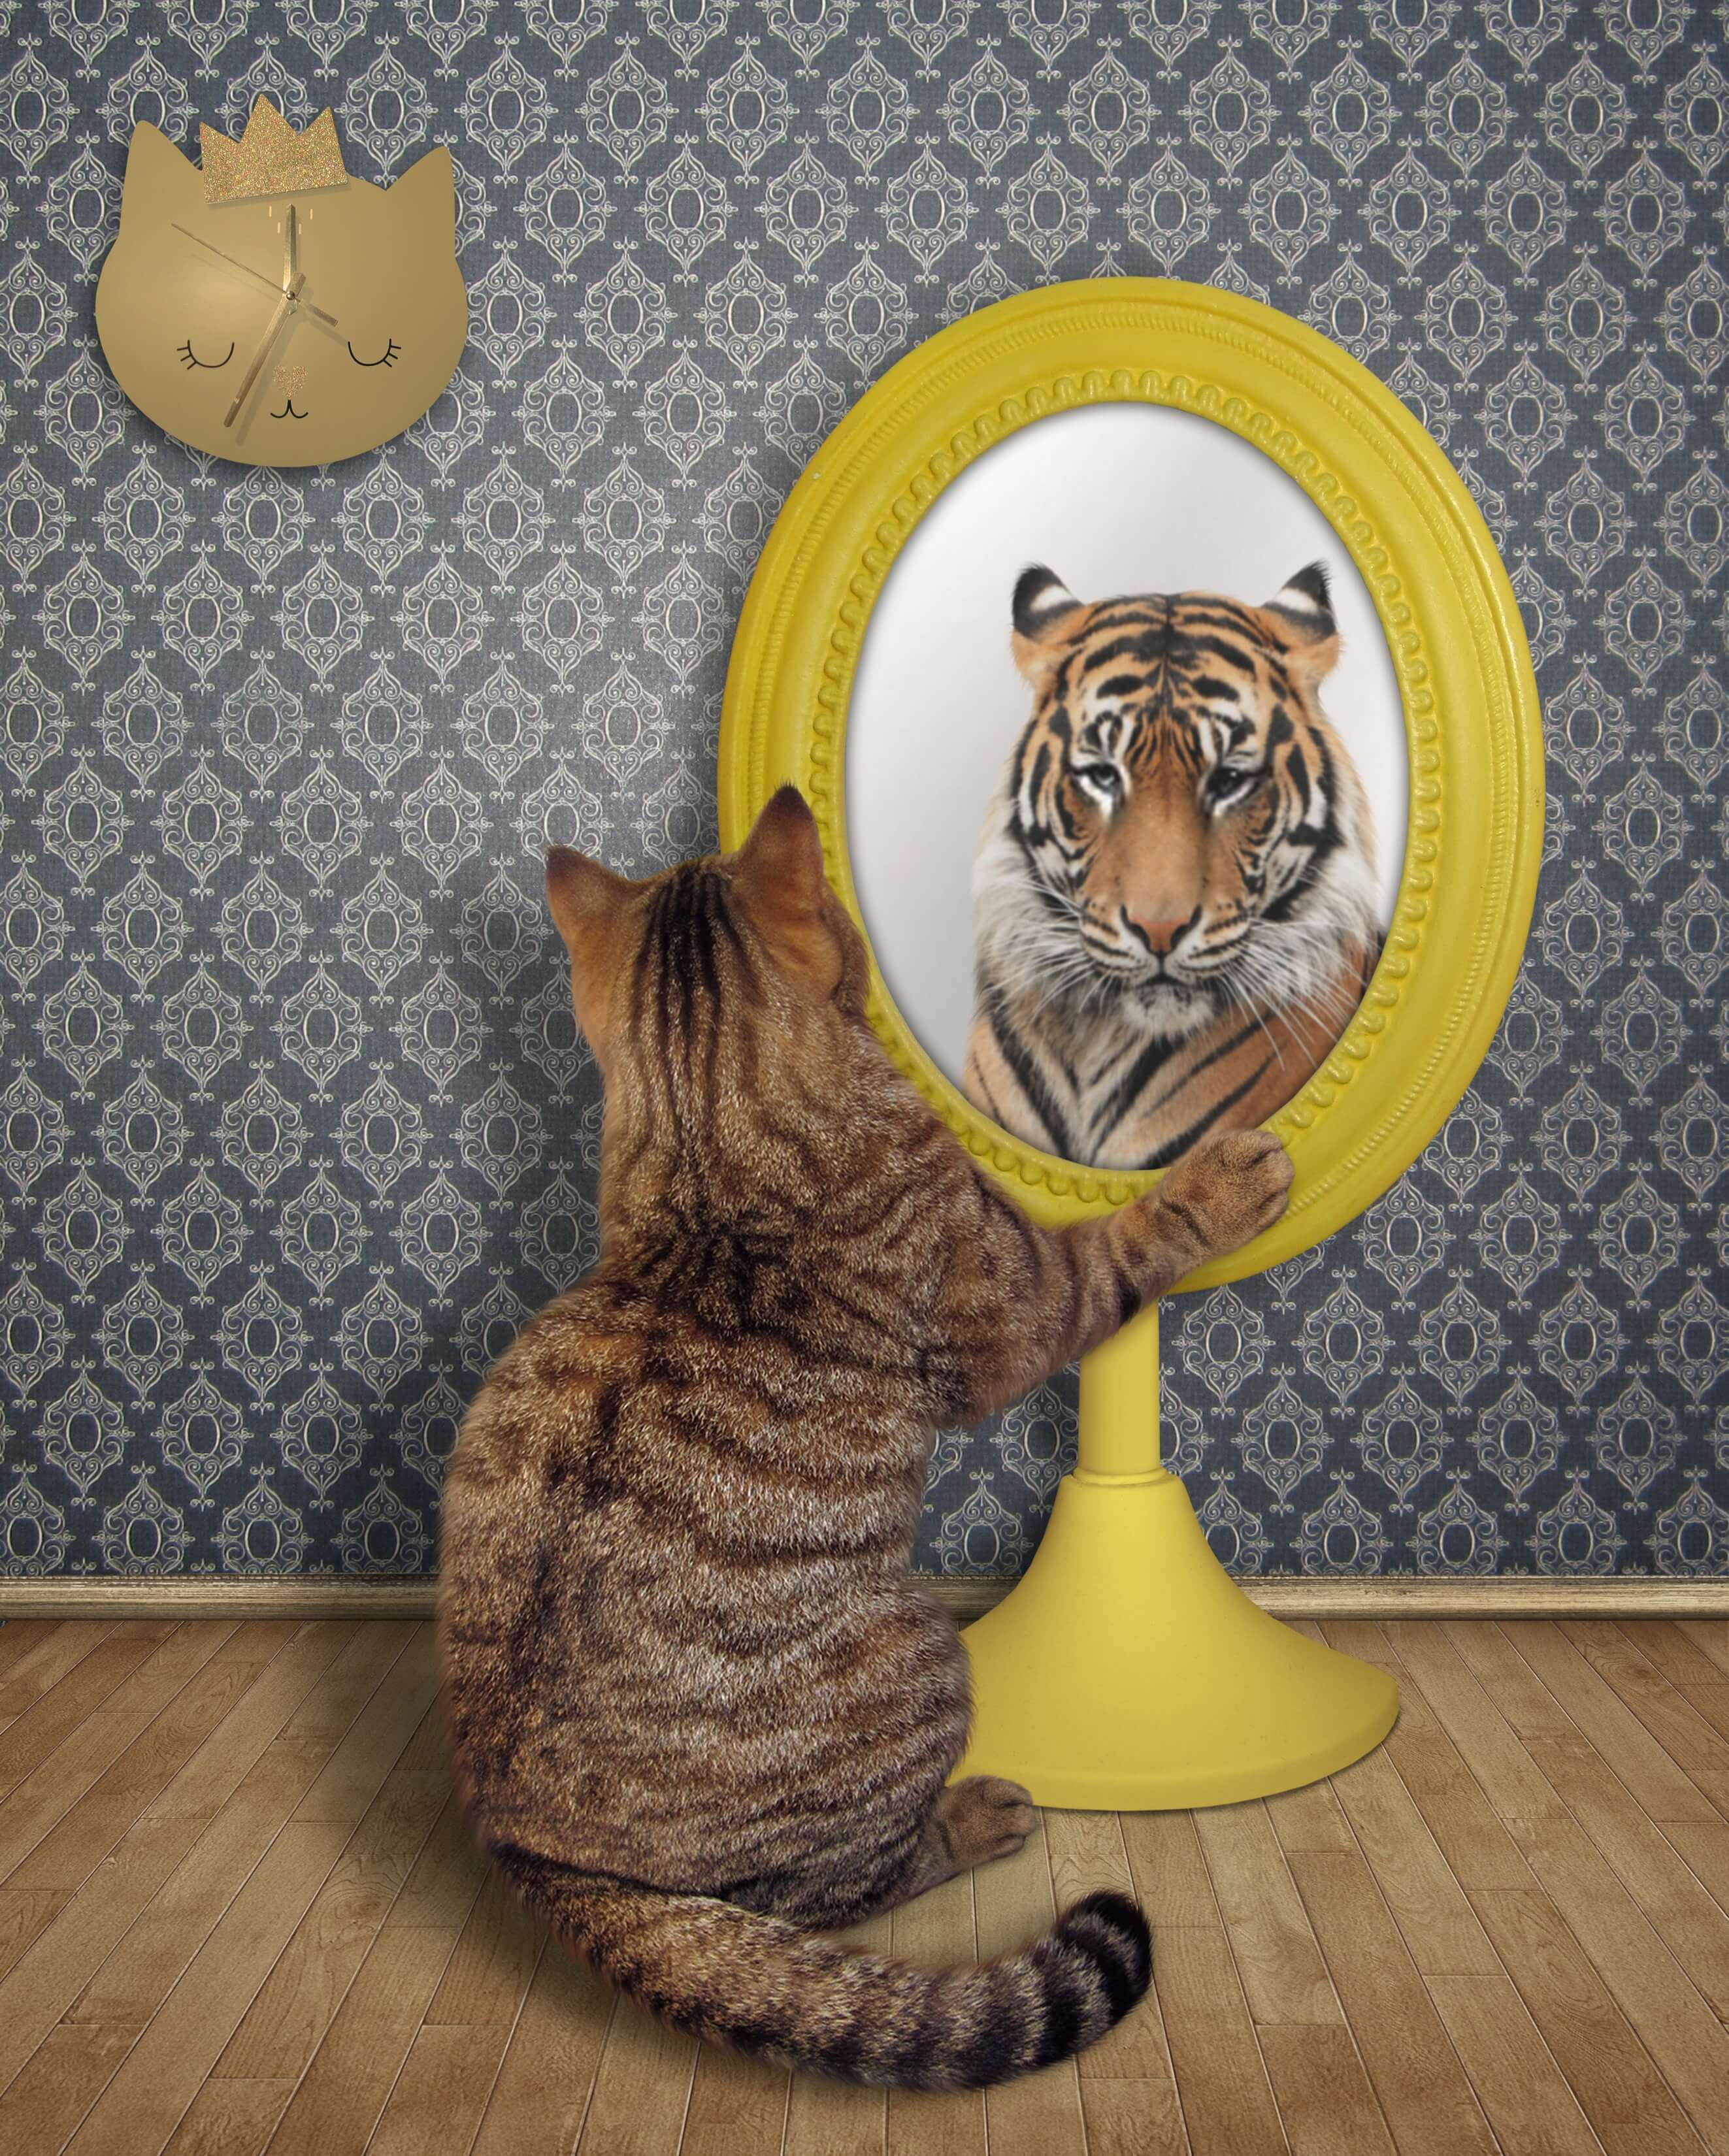 Cat looking in the mirror and seeing a tiger